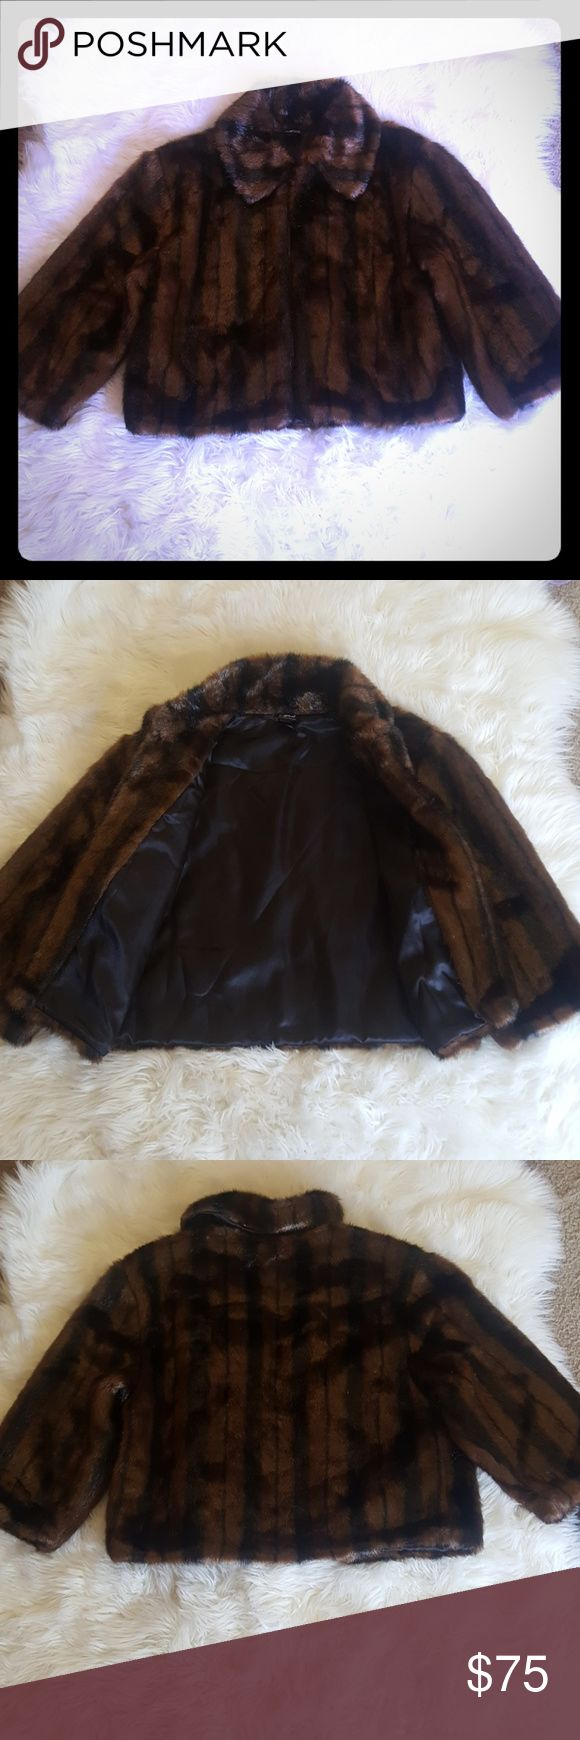 Faux fur jacket Soft chocolate and black faux fur jacket. With quarter length sleeves a collar and a smooth lining on the inside.  Has on clasp at the top near the collar for a cape effect when buttoned. You can put your arms in or simply drape it over your shoulders like the stars do. Cejon Jackets & Coats